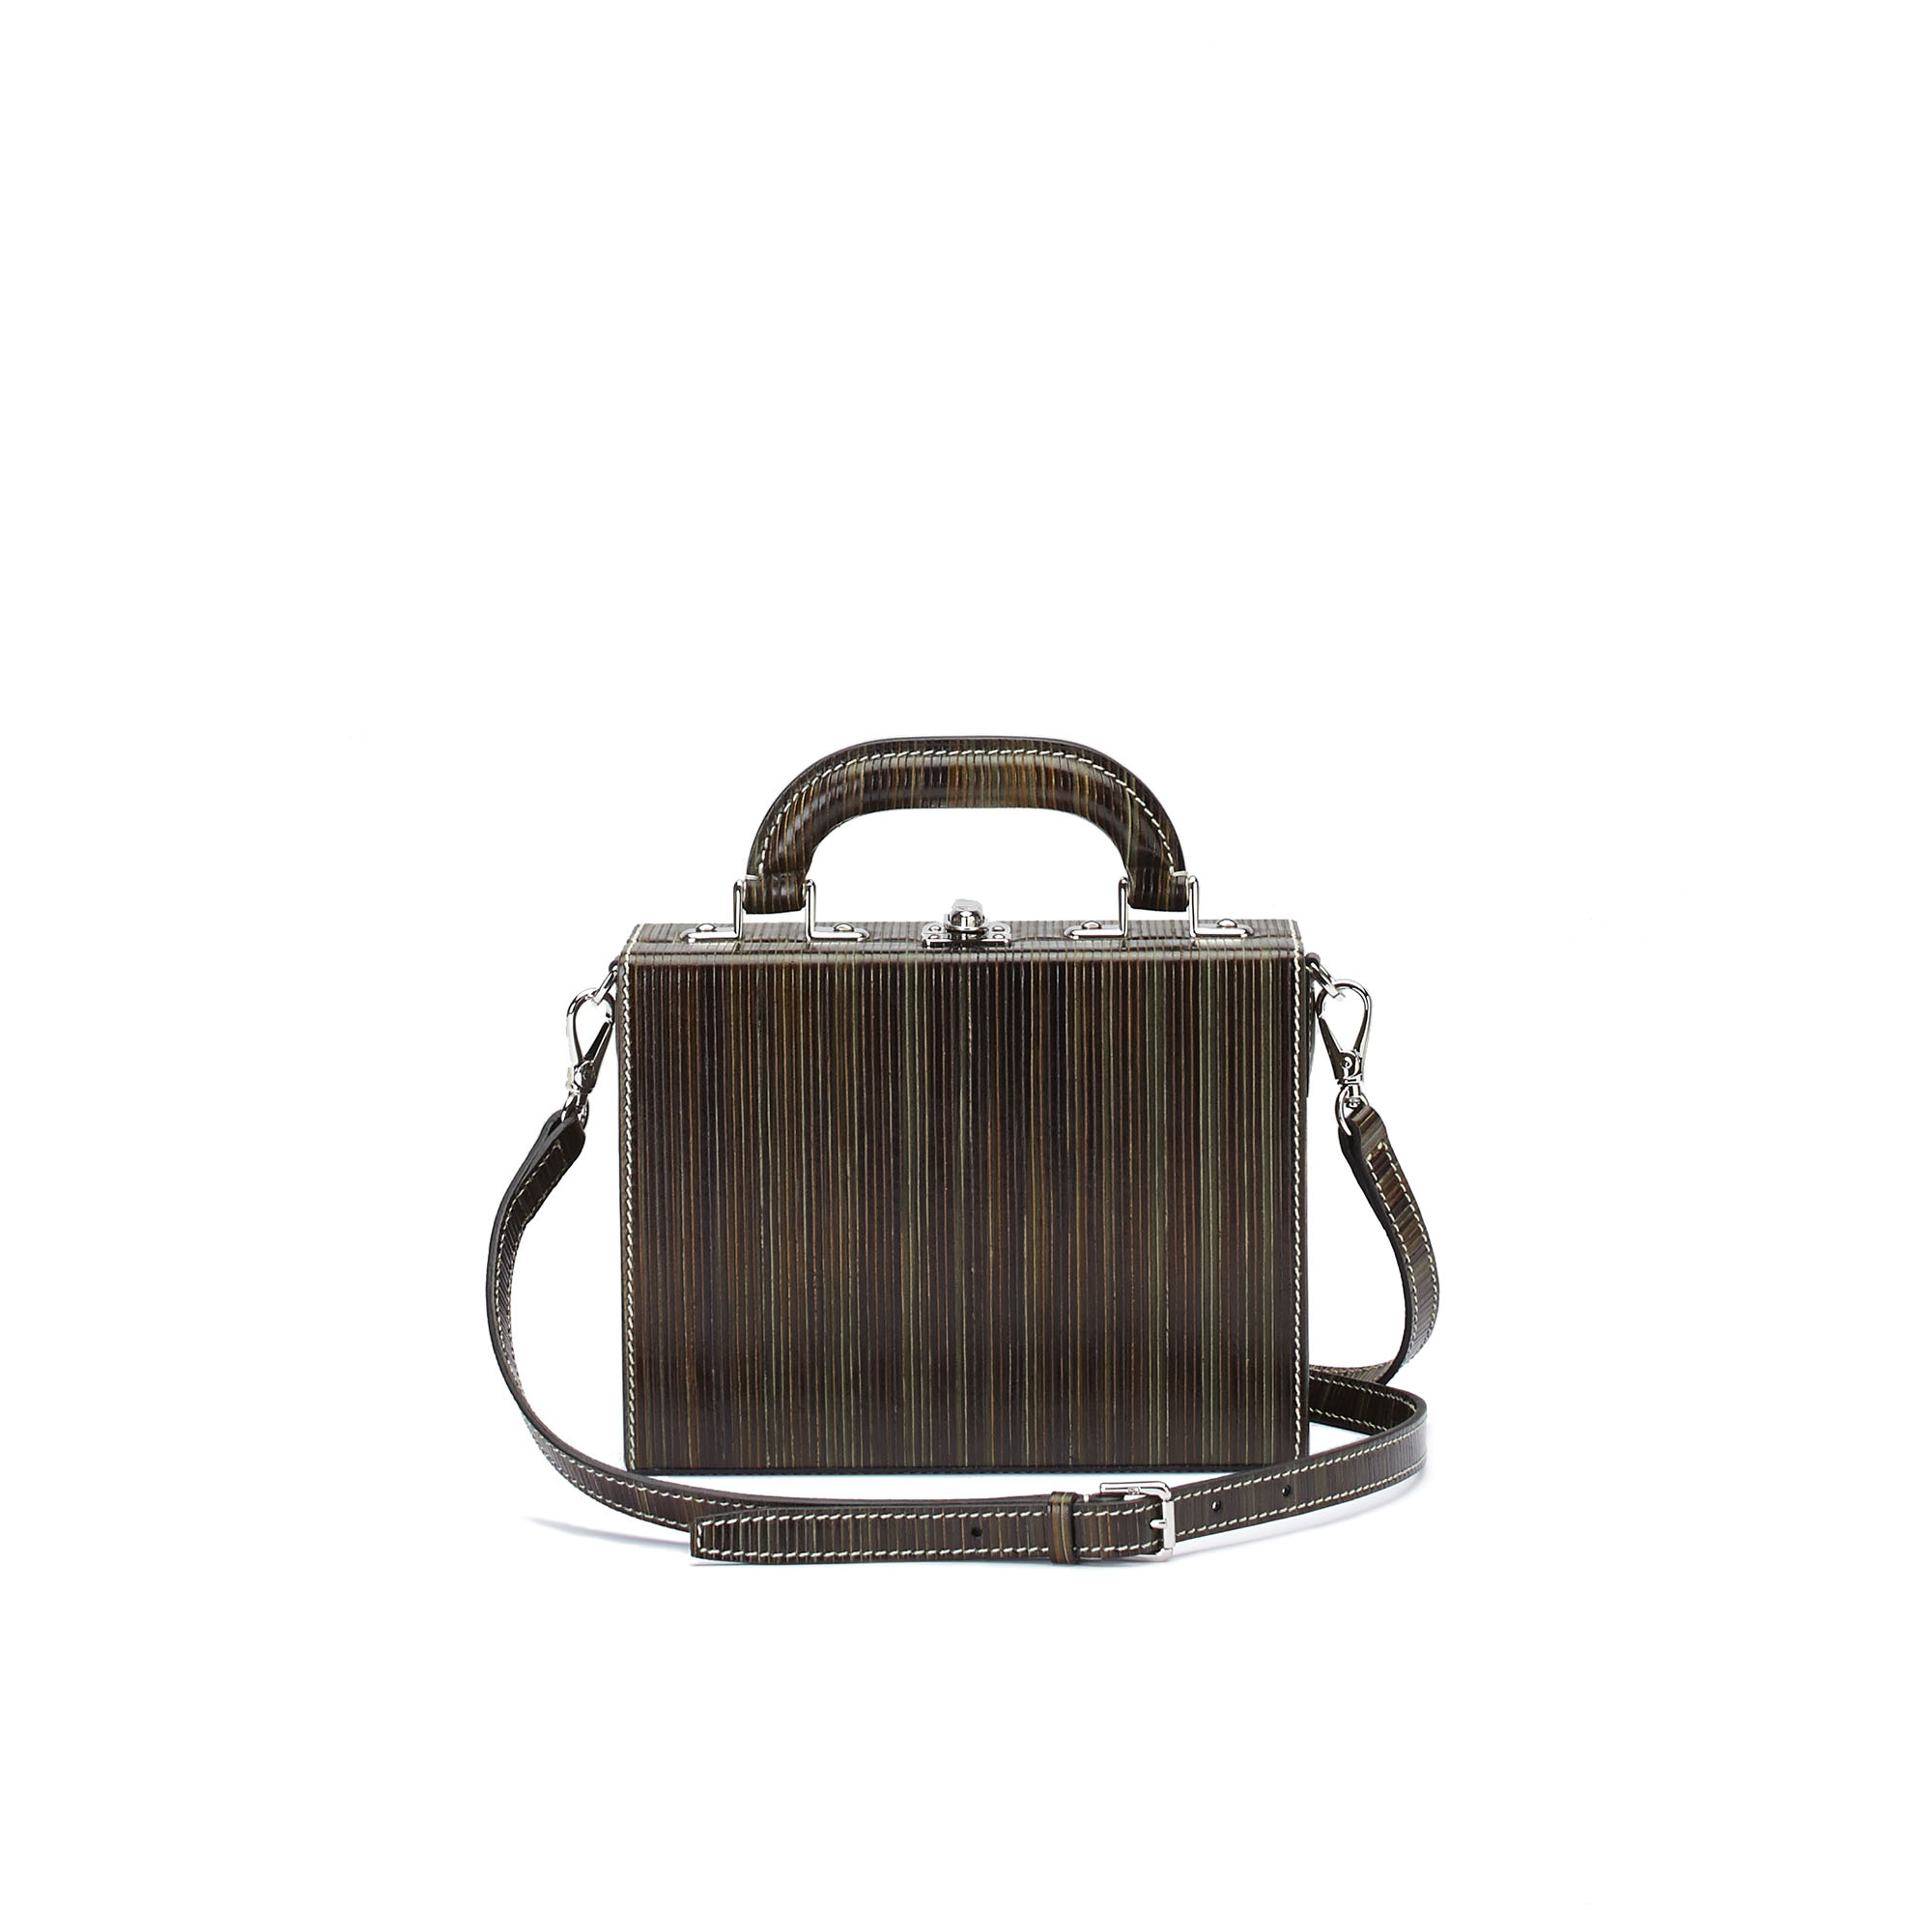 The green wood leather Squared Bertoncina suitcase by Bertoni 1949 03